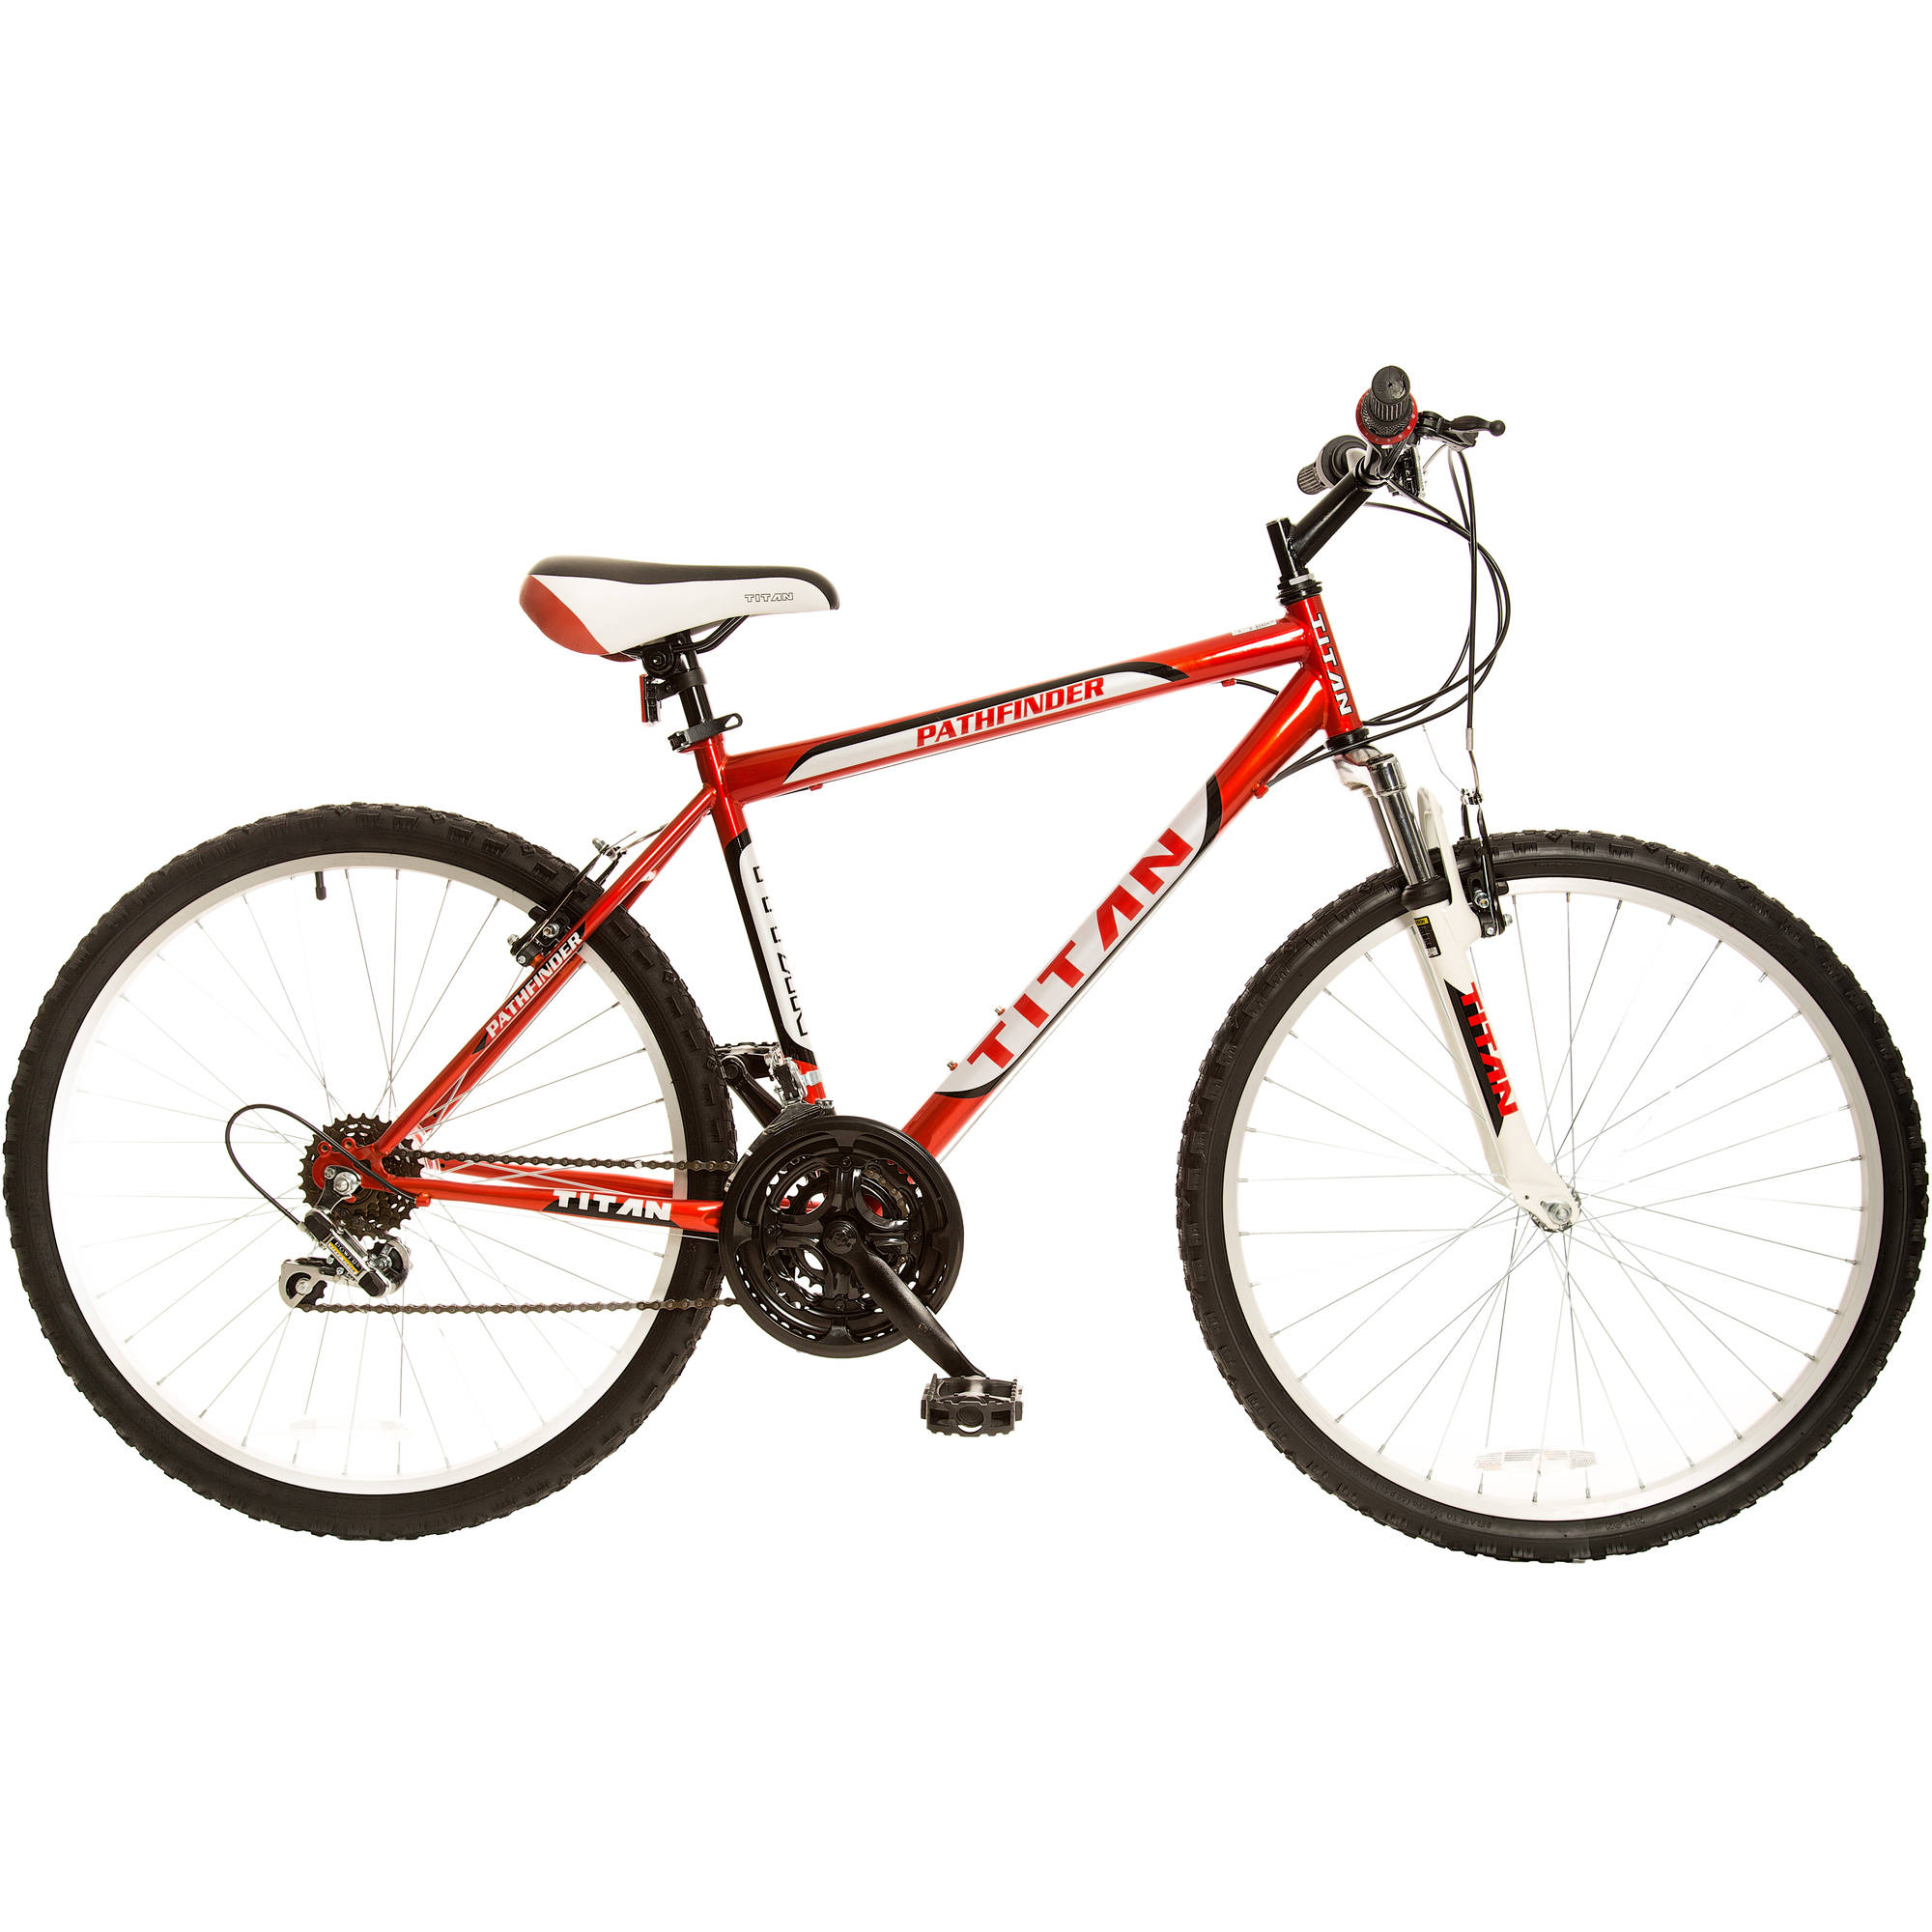 "26"" Titan Pathfinder Men's Mountain Bike"